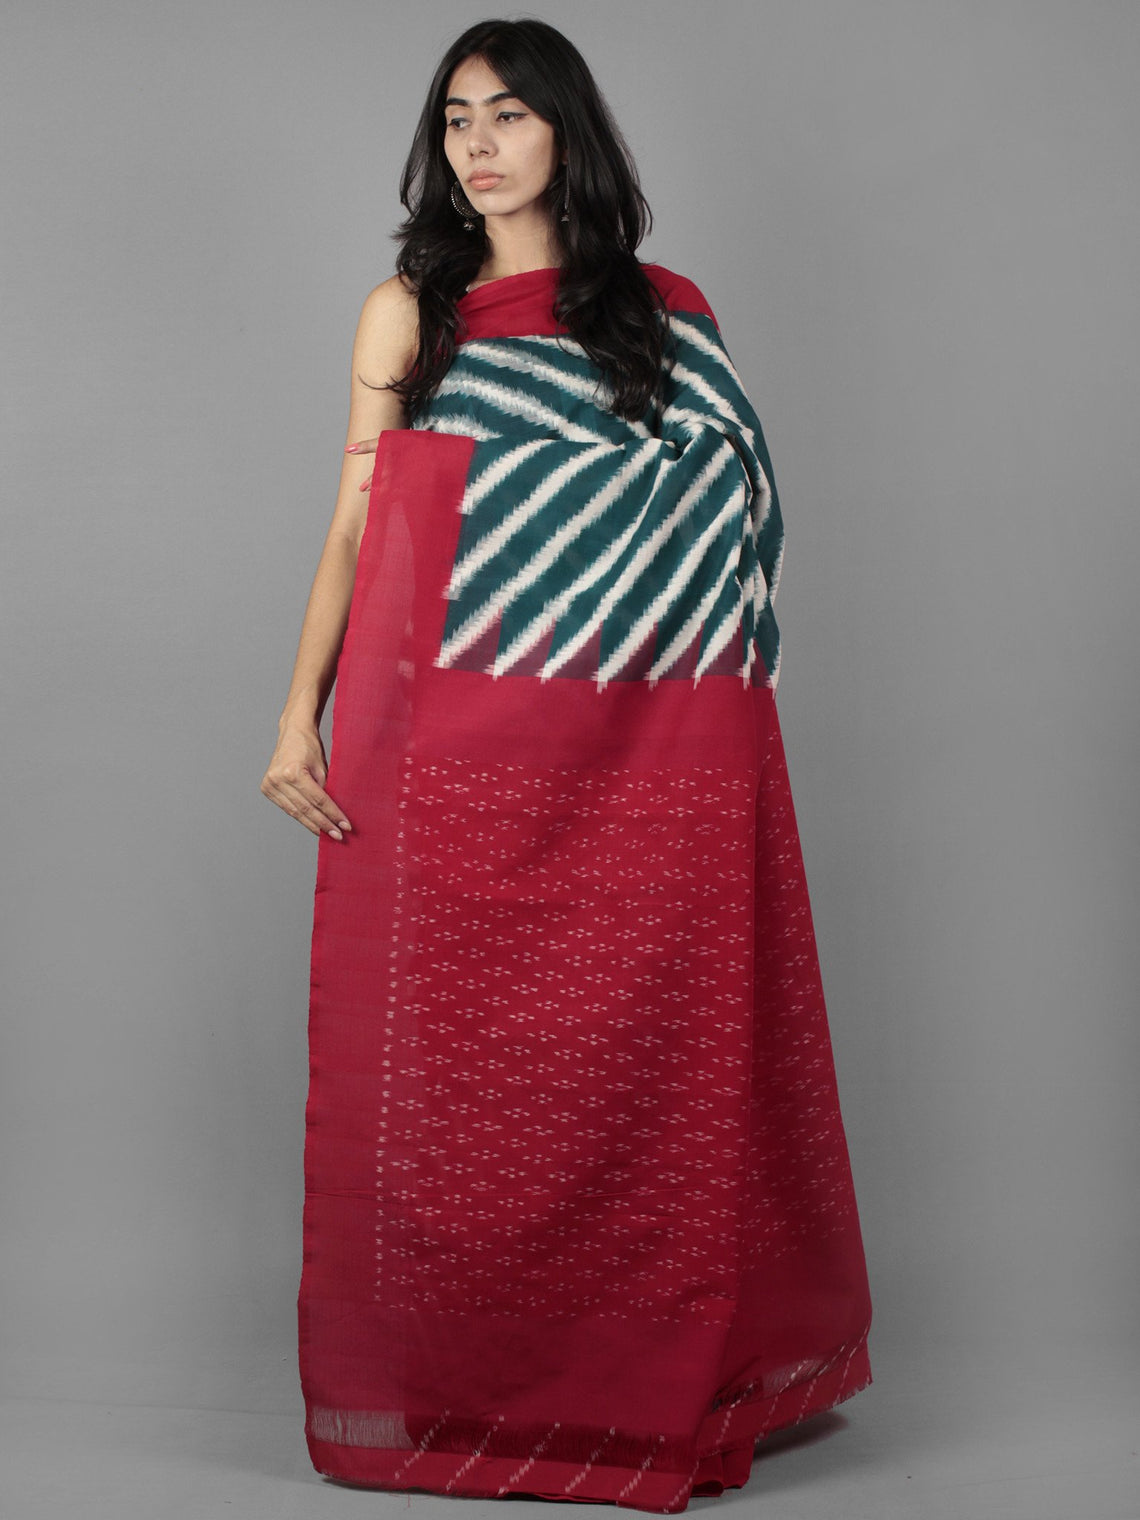 Teal Green Maroon Ivory Double Ikat Handwoven Pochampally Cotton Saree - S031701917